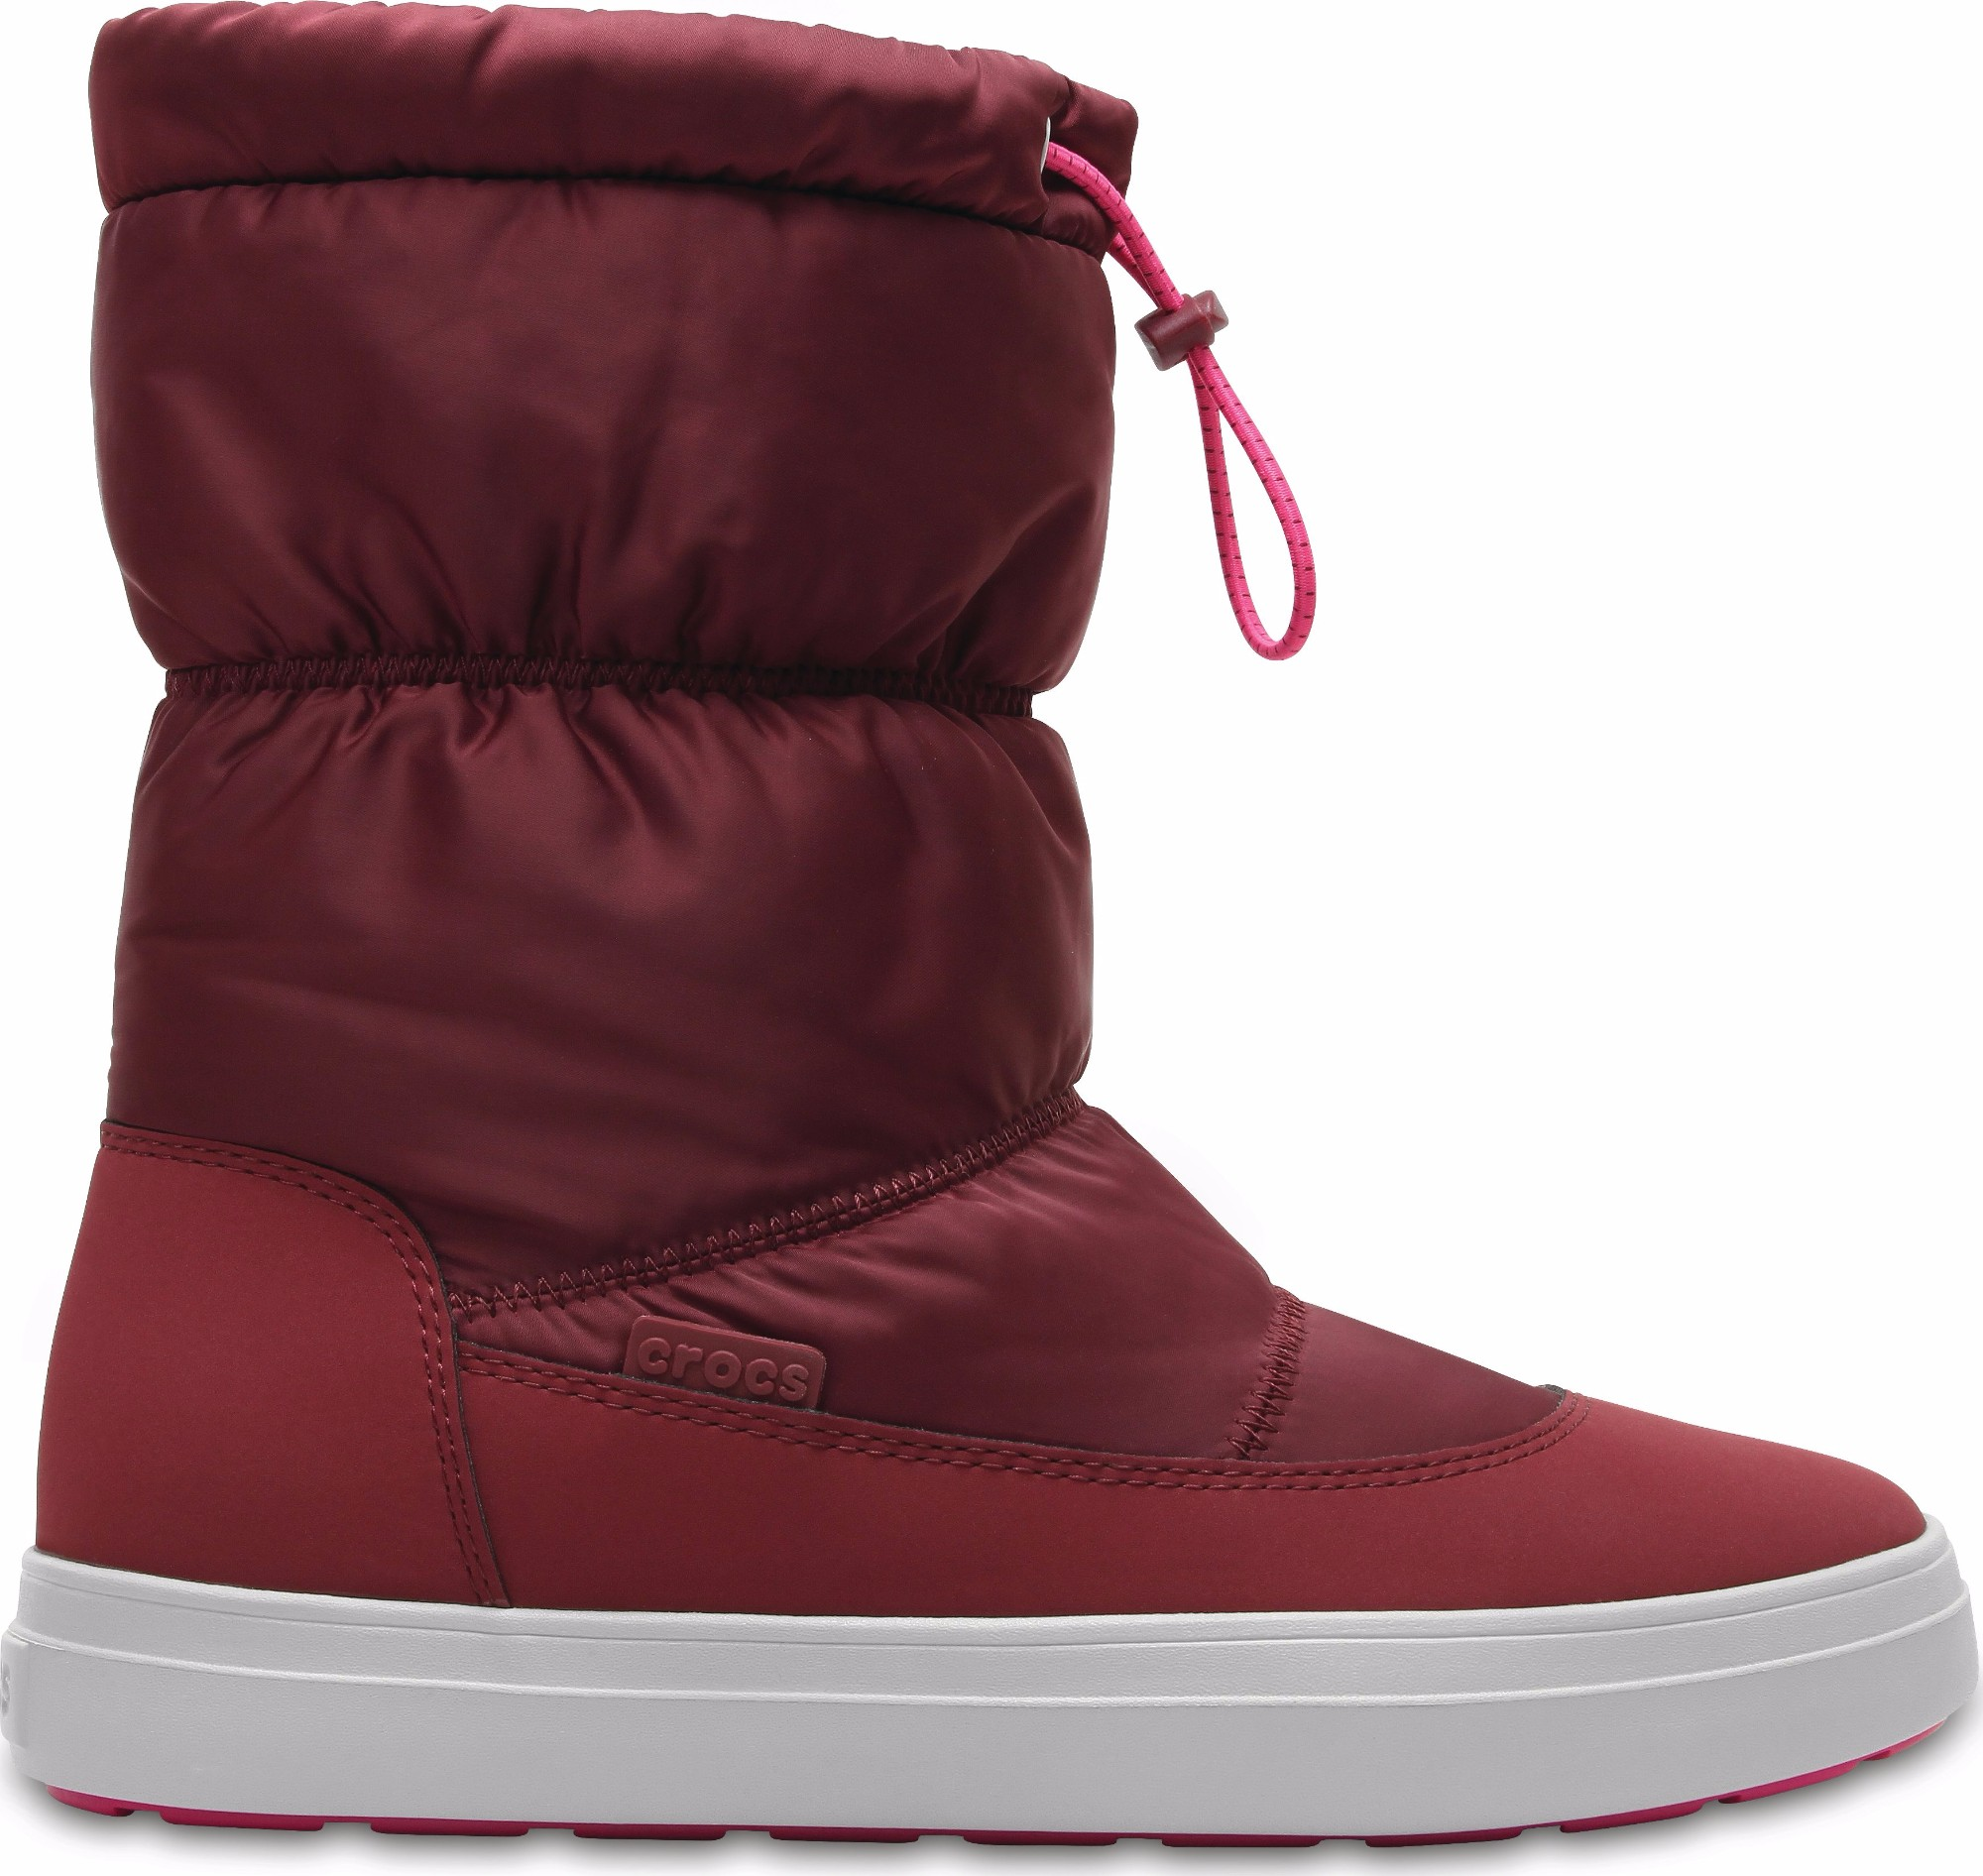 Crocs™ Lodgepoint Shiny Pull-On Boot Garnet/Candy Pink 41